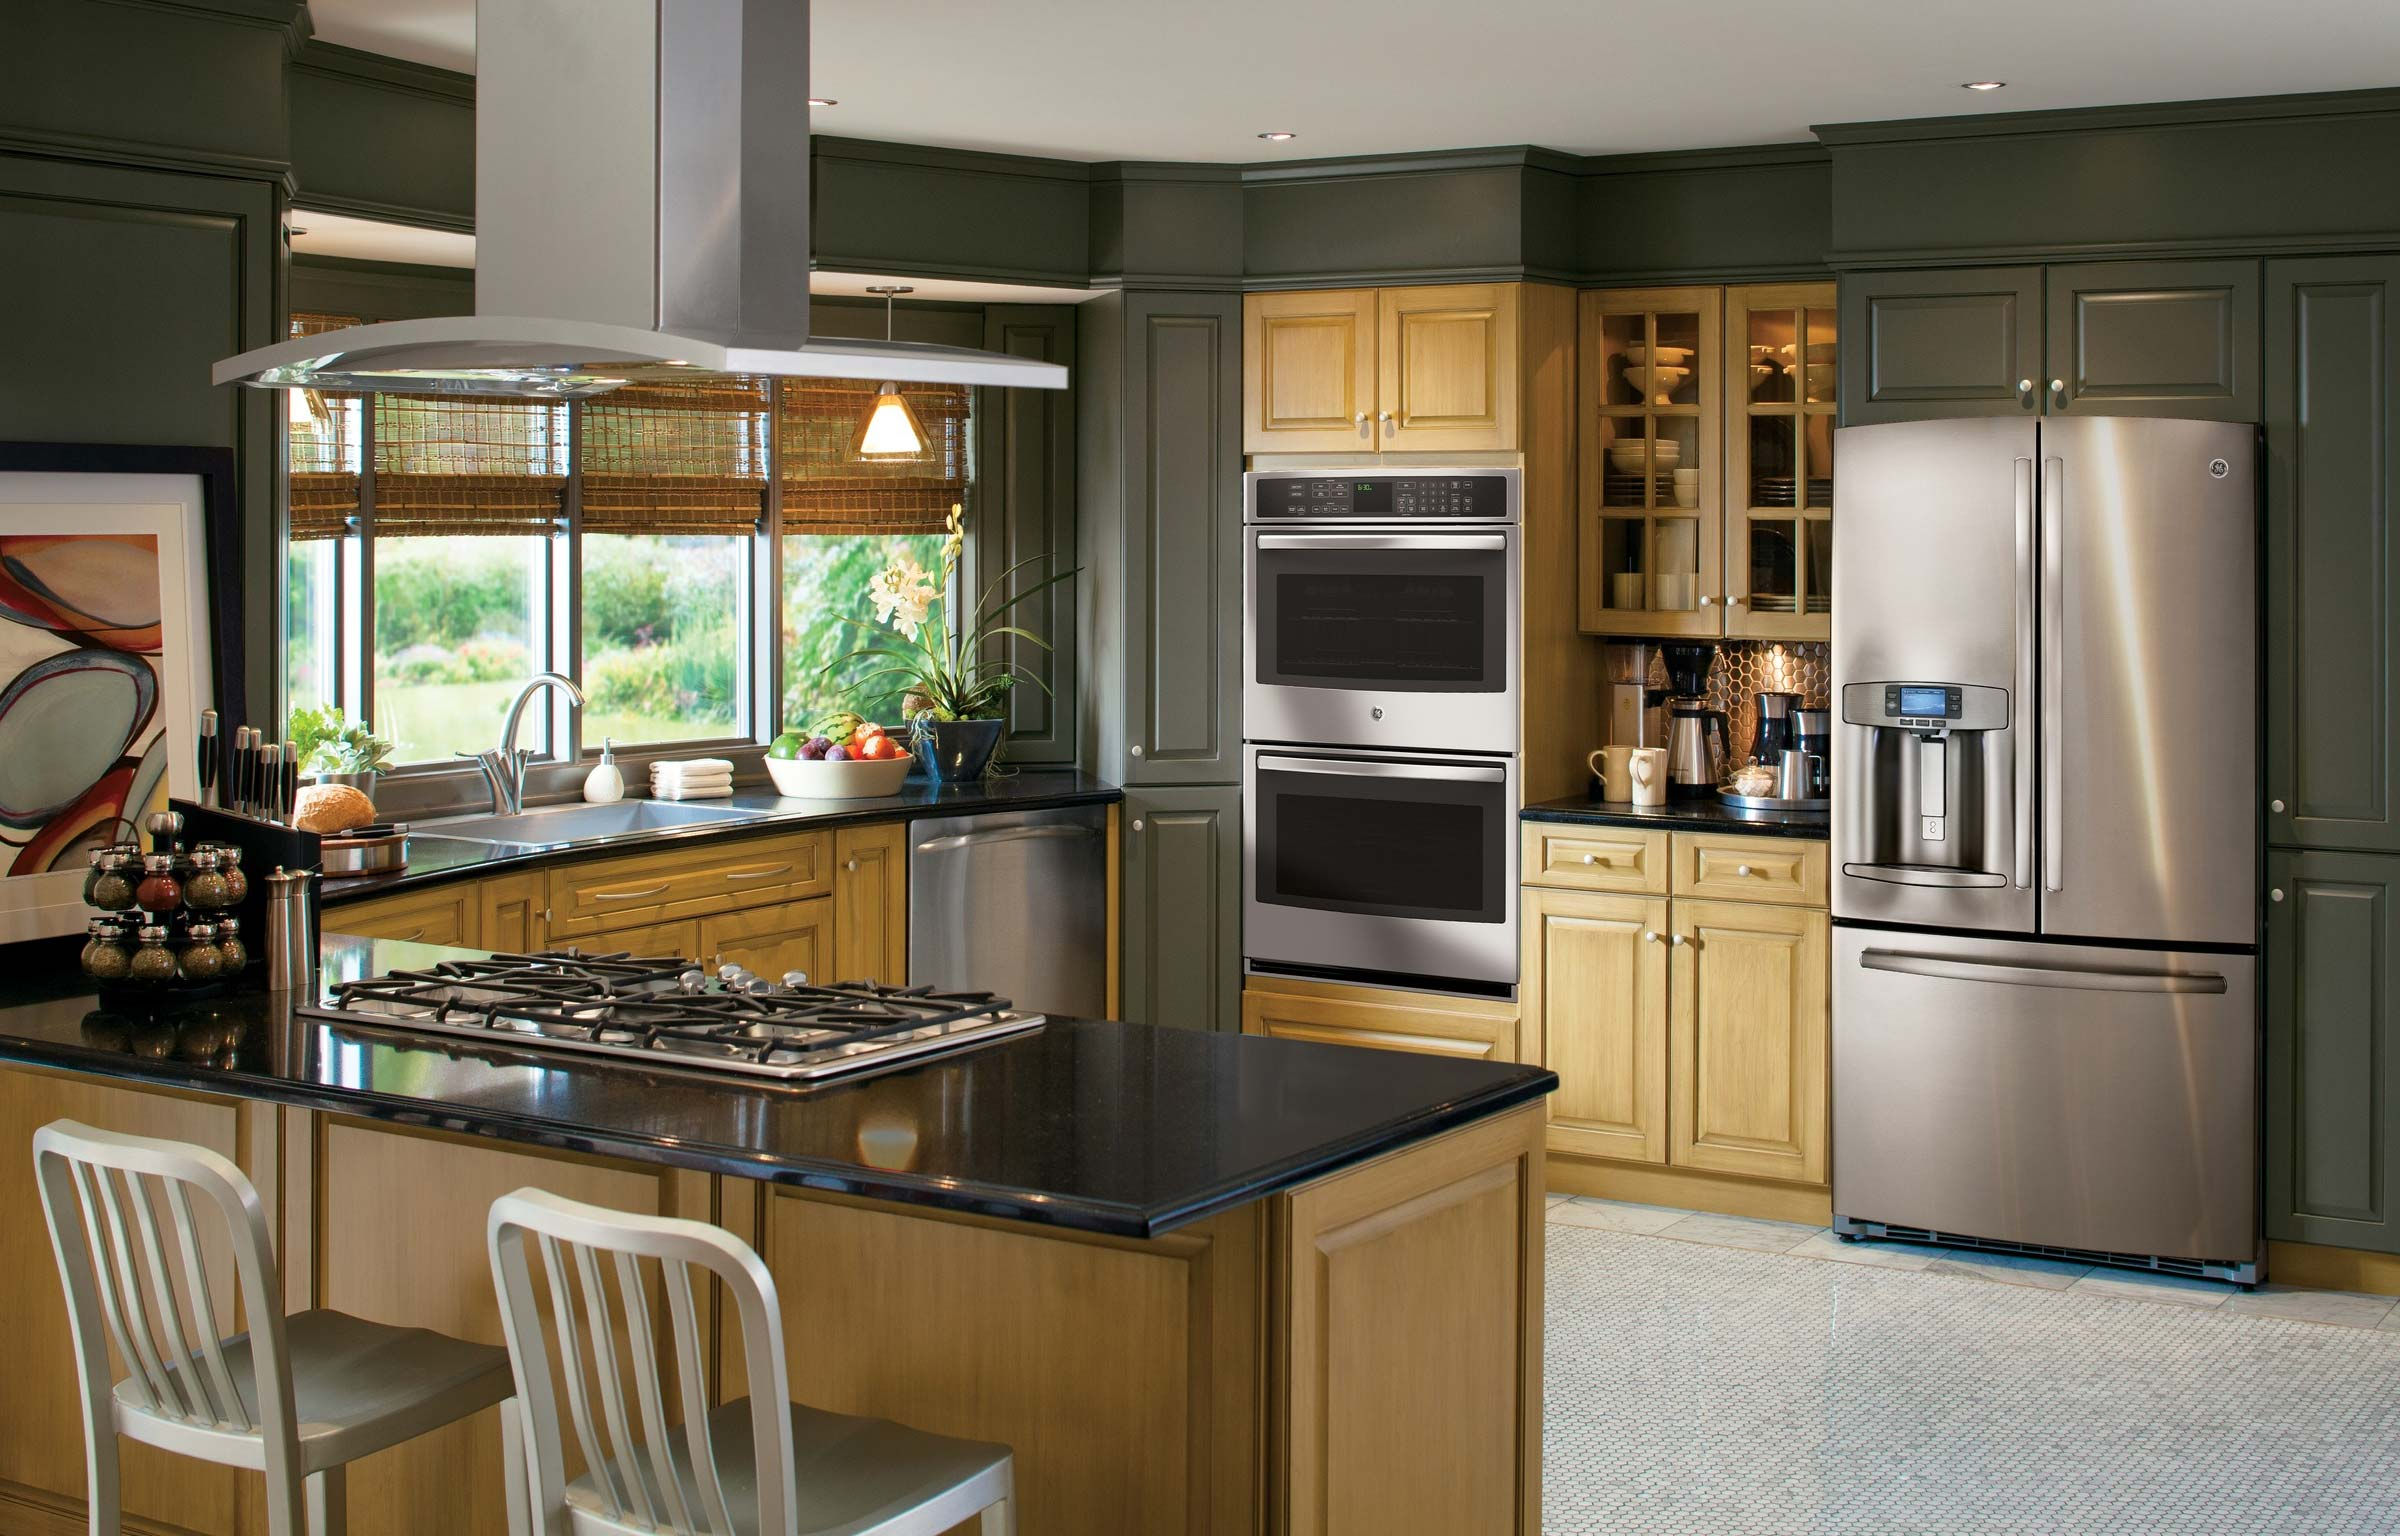 Stainless-steel-appliances-in-a-modern-kitchen.